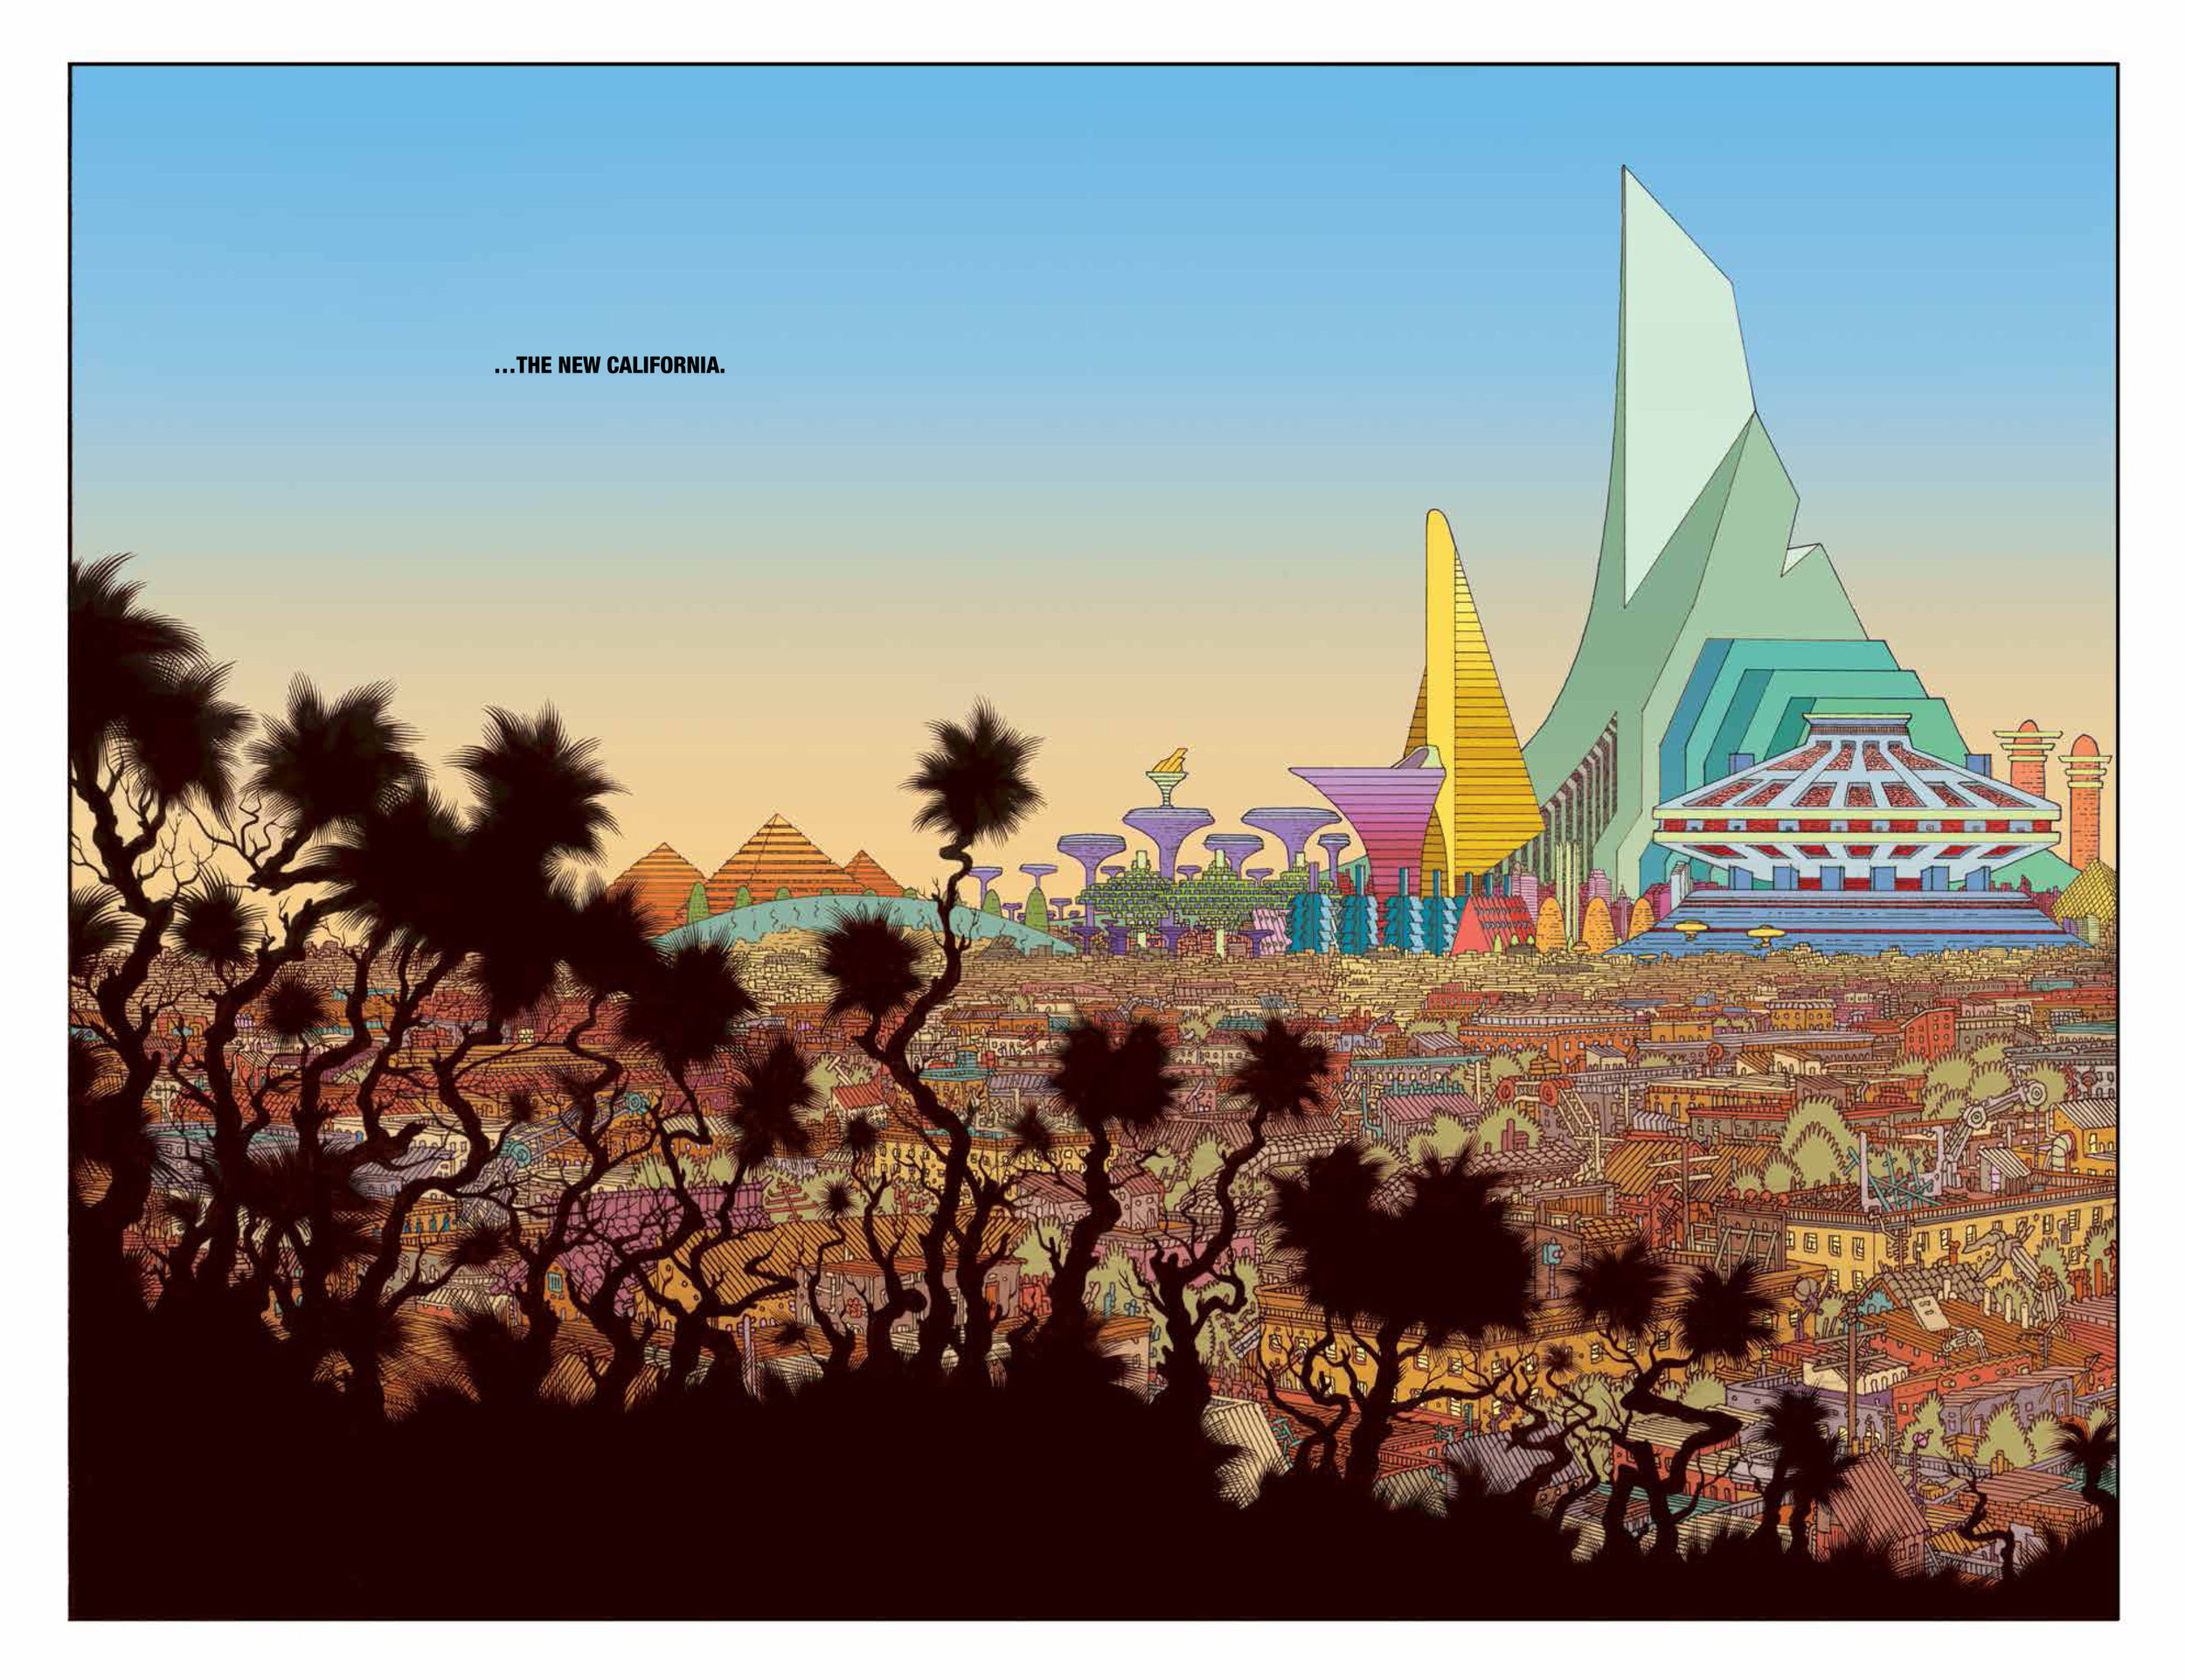 The New World #1  's  colorful-yet-bleak reimagining of Los Angeles.